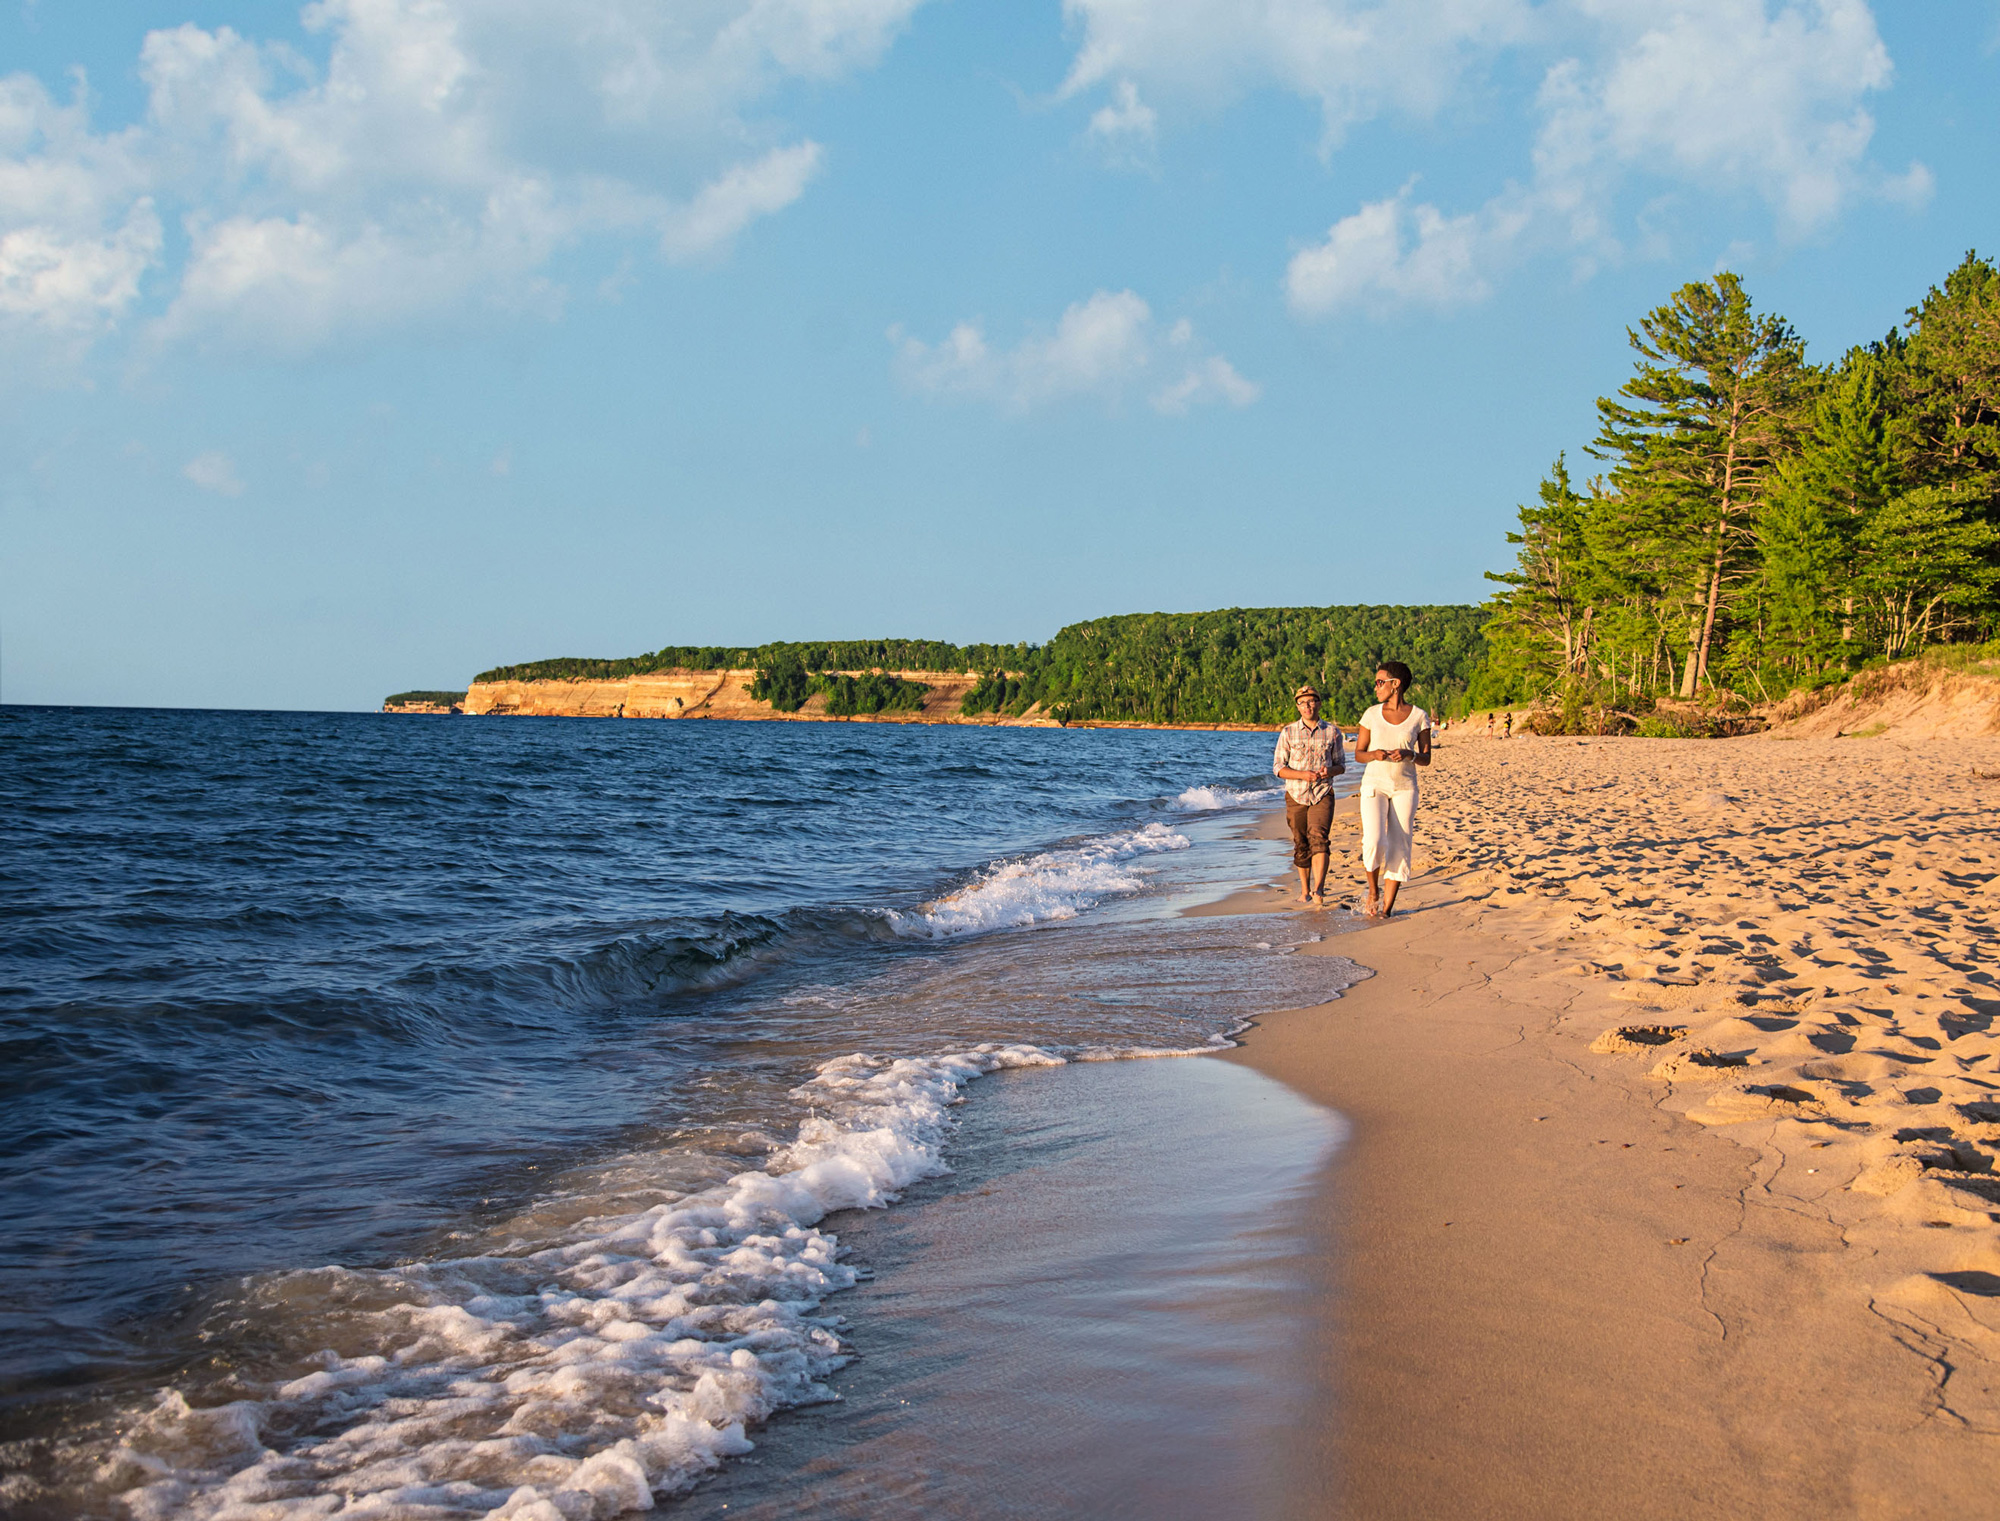 Miners Beach, Munising, Michigan